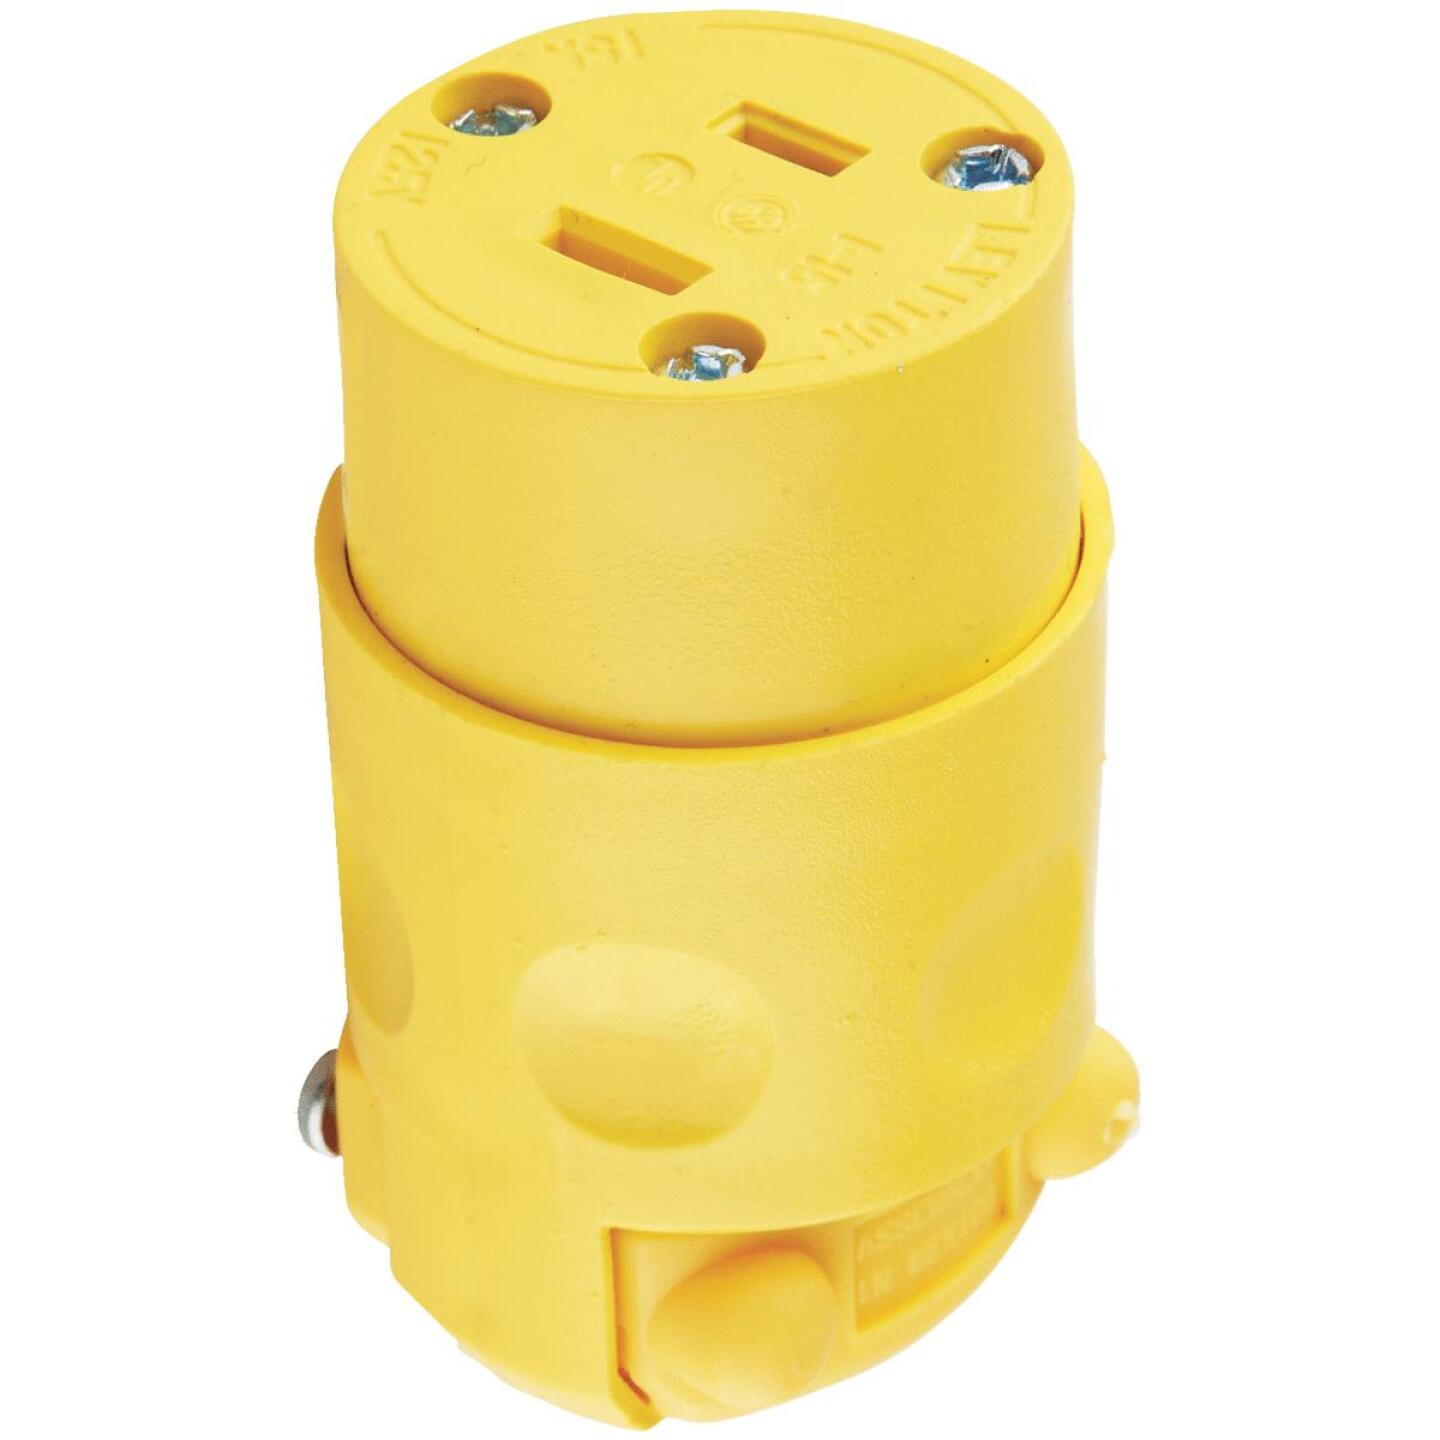 Leviton 15A 125V 2-Wire 2-Pole Residential Grade Cord Connector Image 3